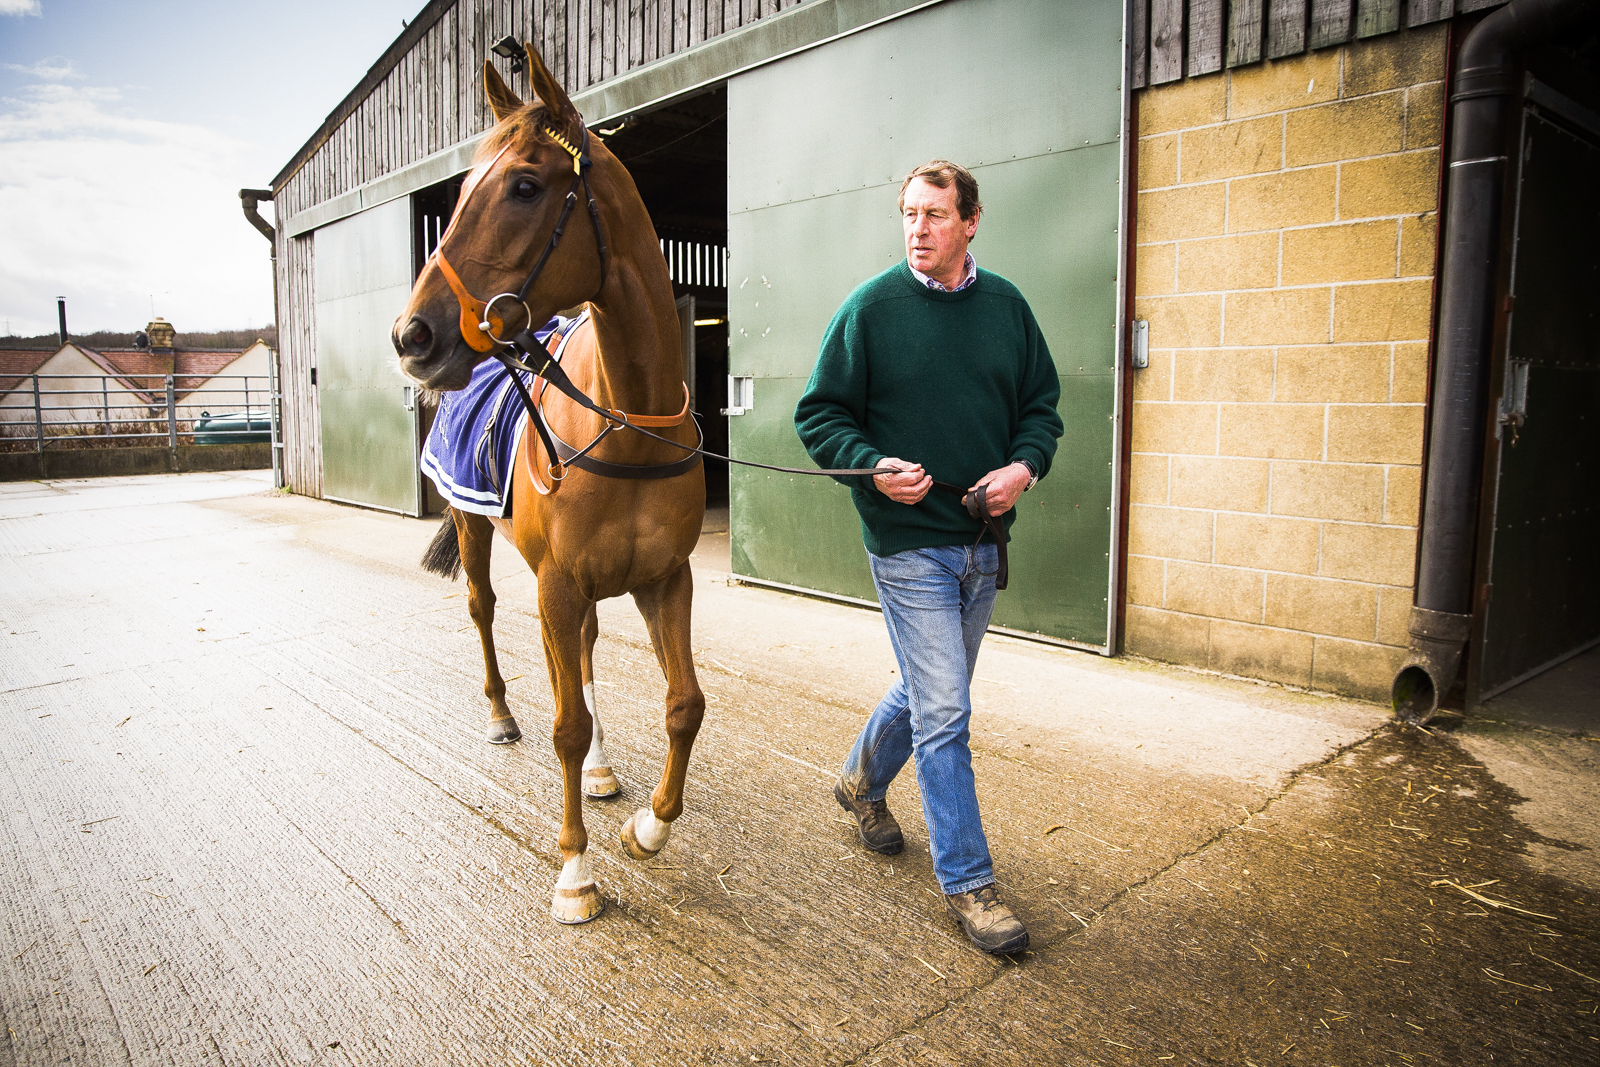 Horse trainer Kim Bailey at his stables in Andoversford, Gloucestershire, with his racehorse Last Samurai